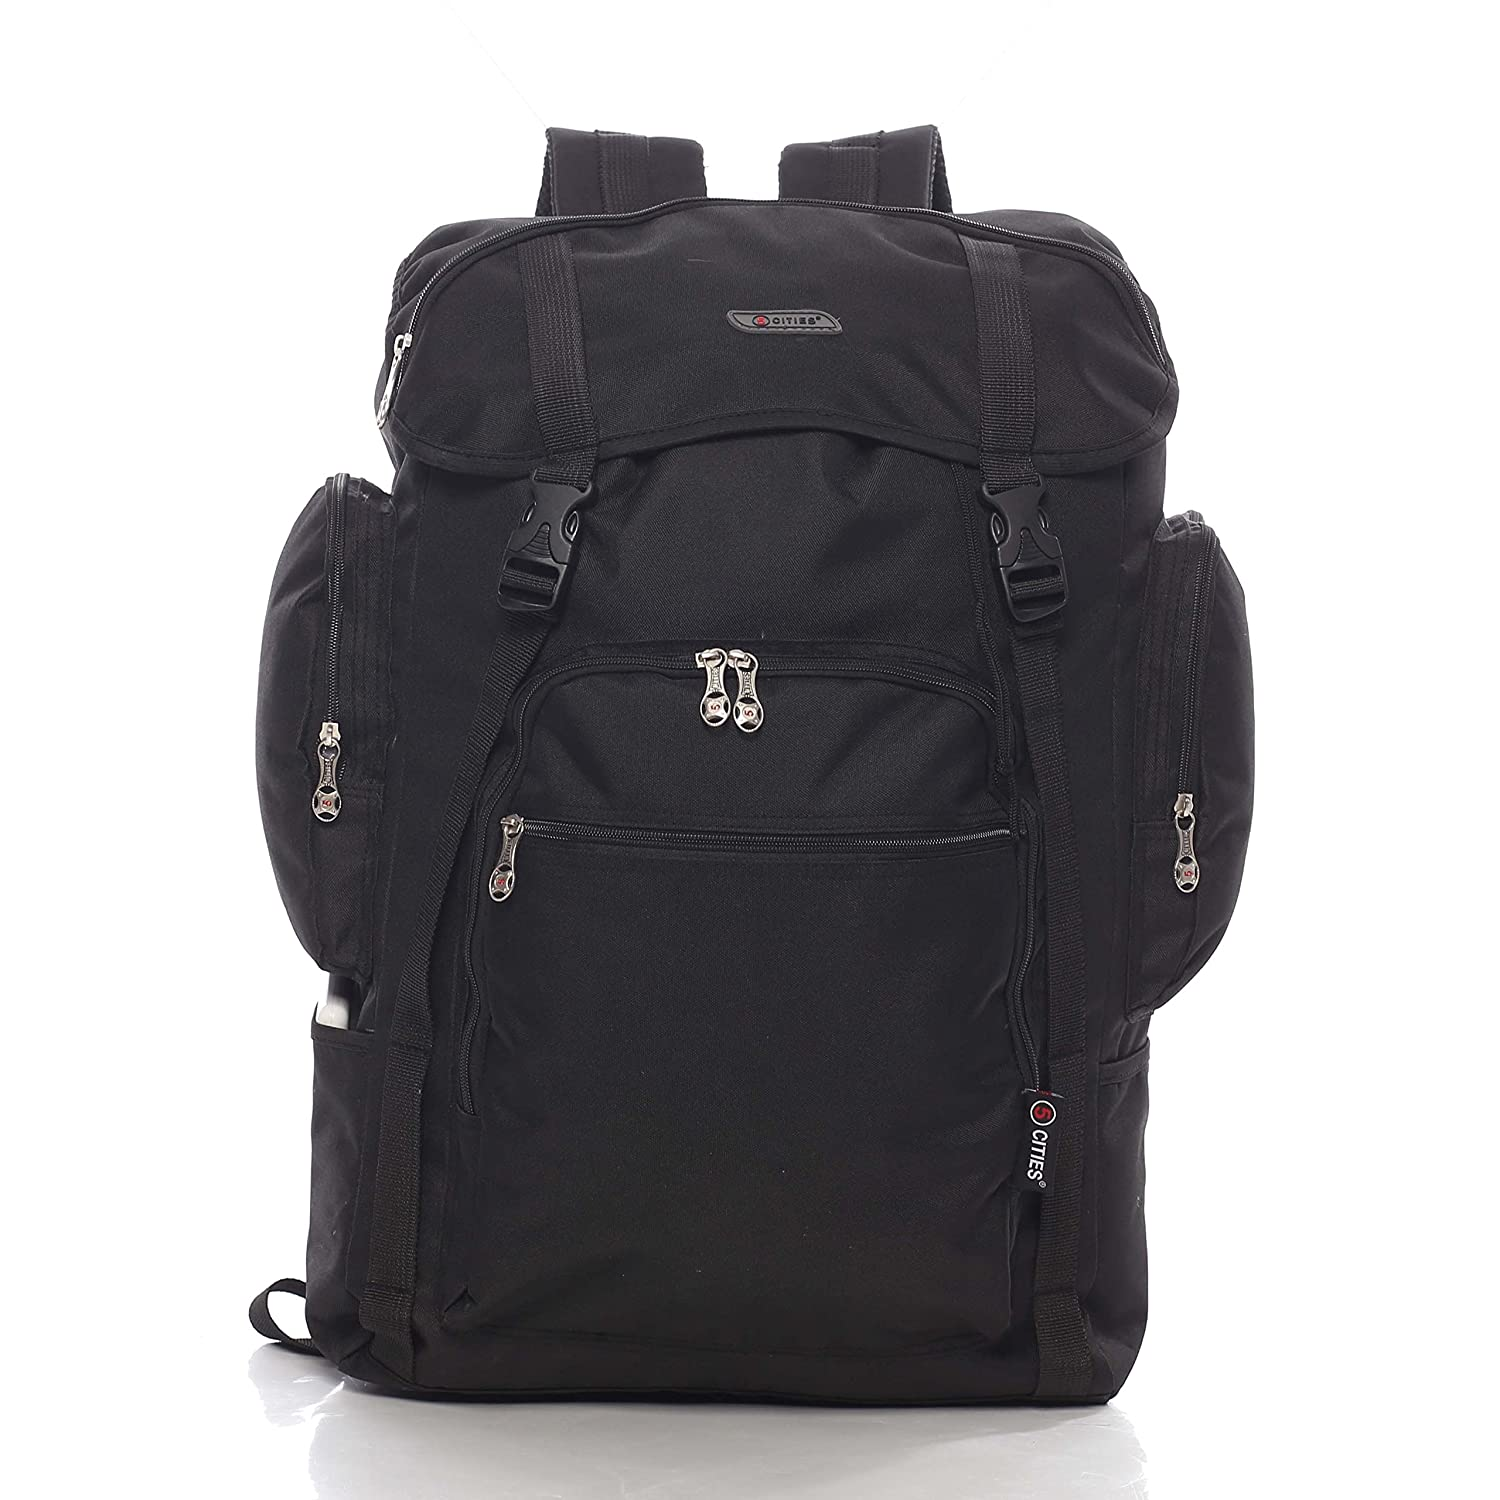 5 Cities Ryanair Maximum Cabin Allowance 55X40X20Cm Backpack, Approved Flight  Bag for Easyjet Hand Luggage, 55 cm, 44.0 L, Black  Amazon.co.uk  Luggage 925e9b250b